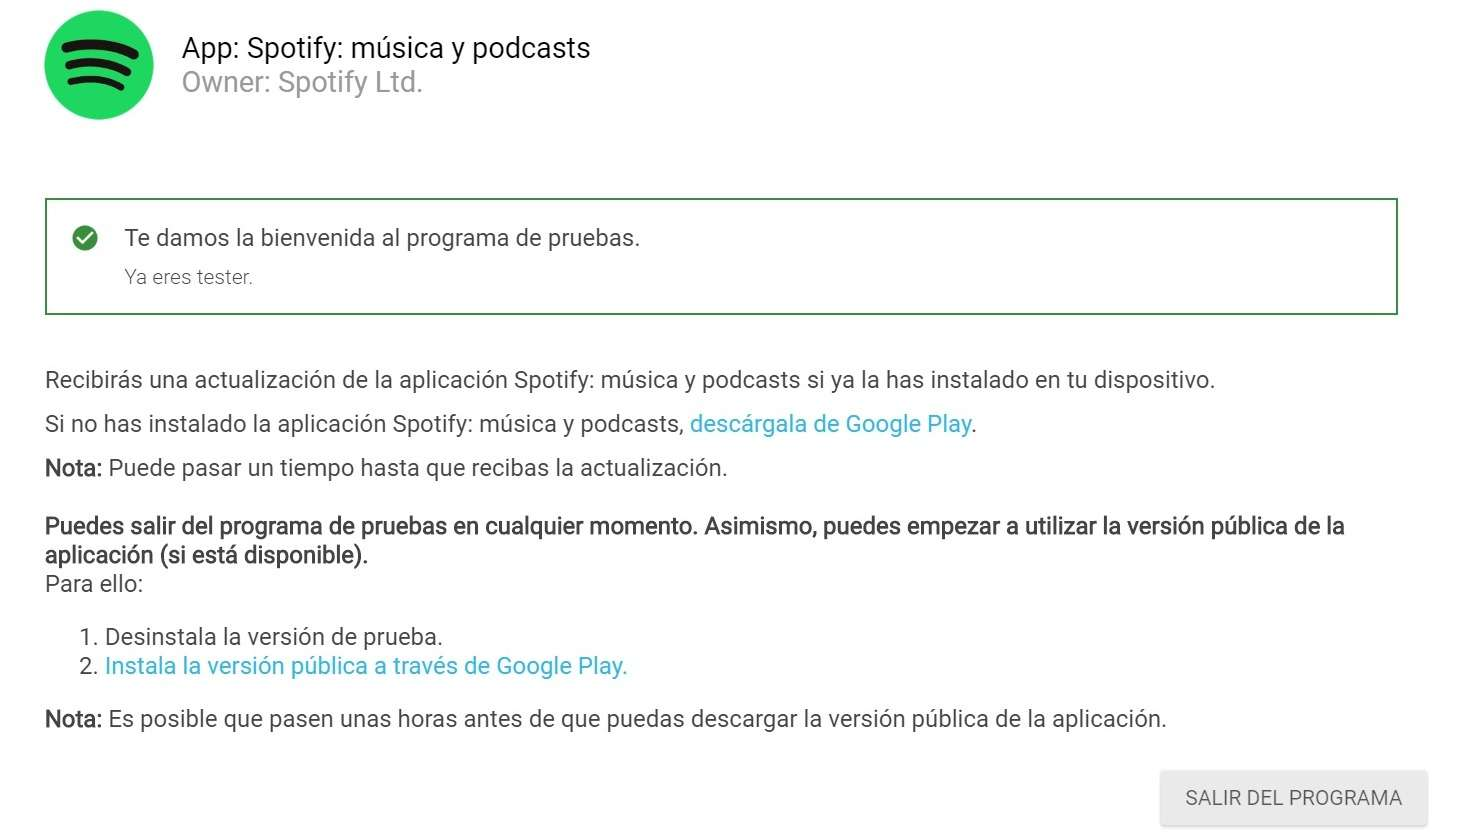 Spotify: música y podcasts